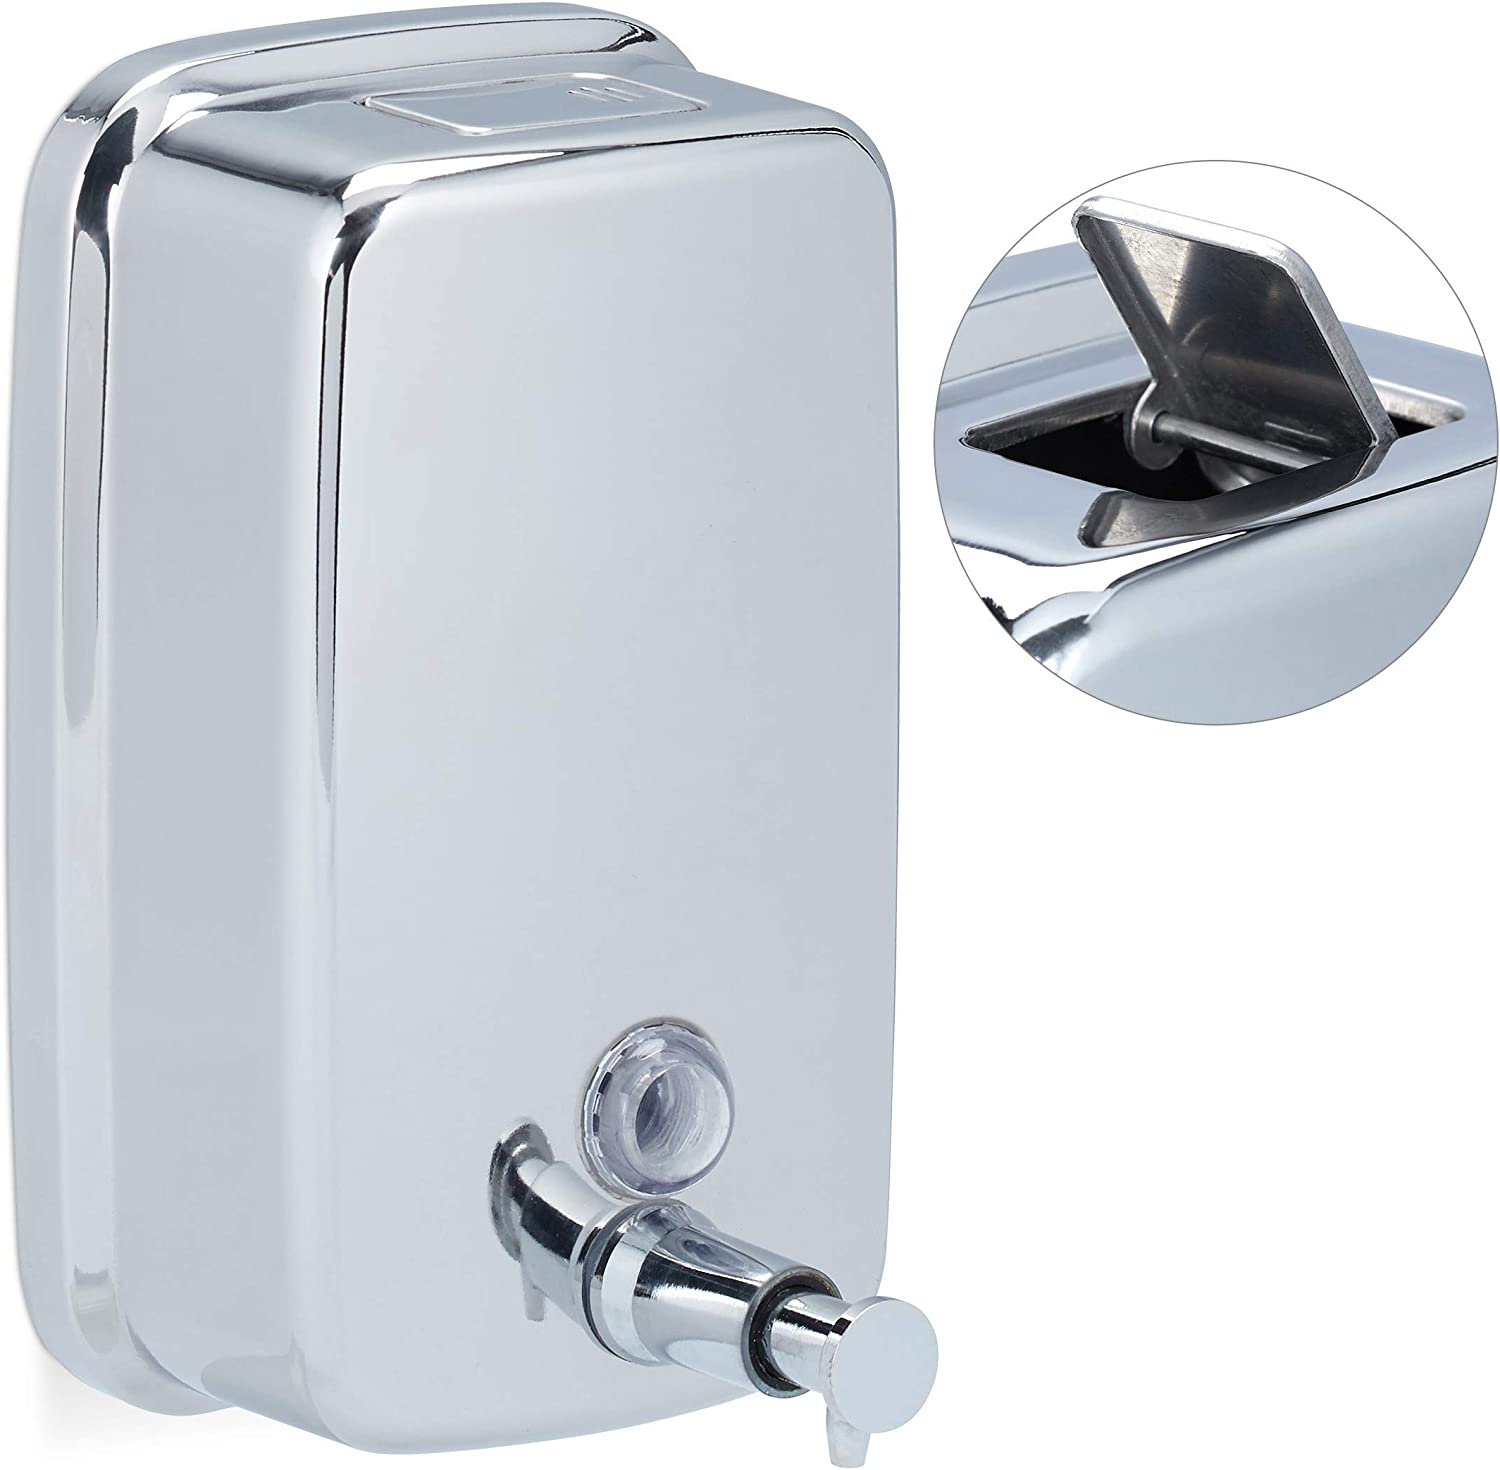 Relaxdays Dispenser Wall Mount 特別セール品 Pump Steel Stainless 安心の定価販売 Liqu for